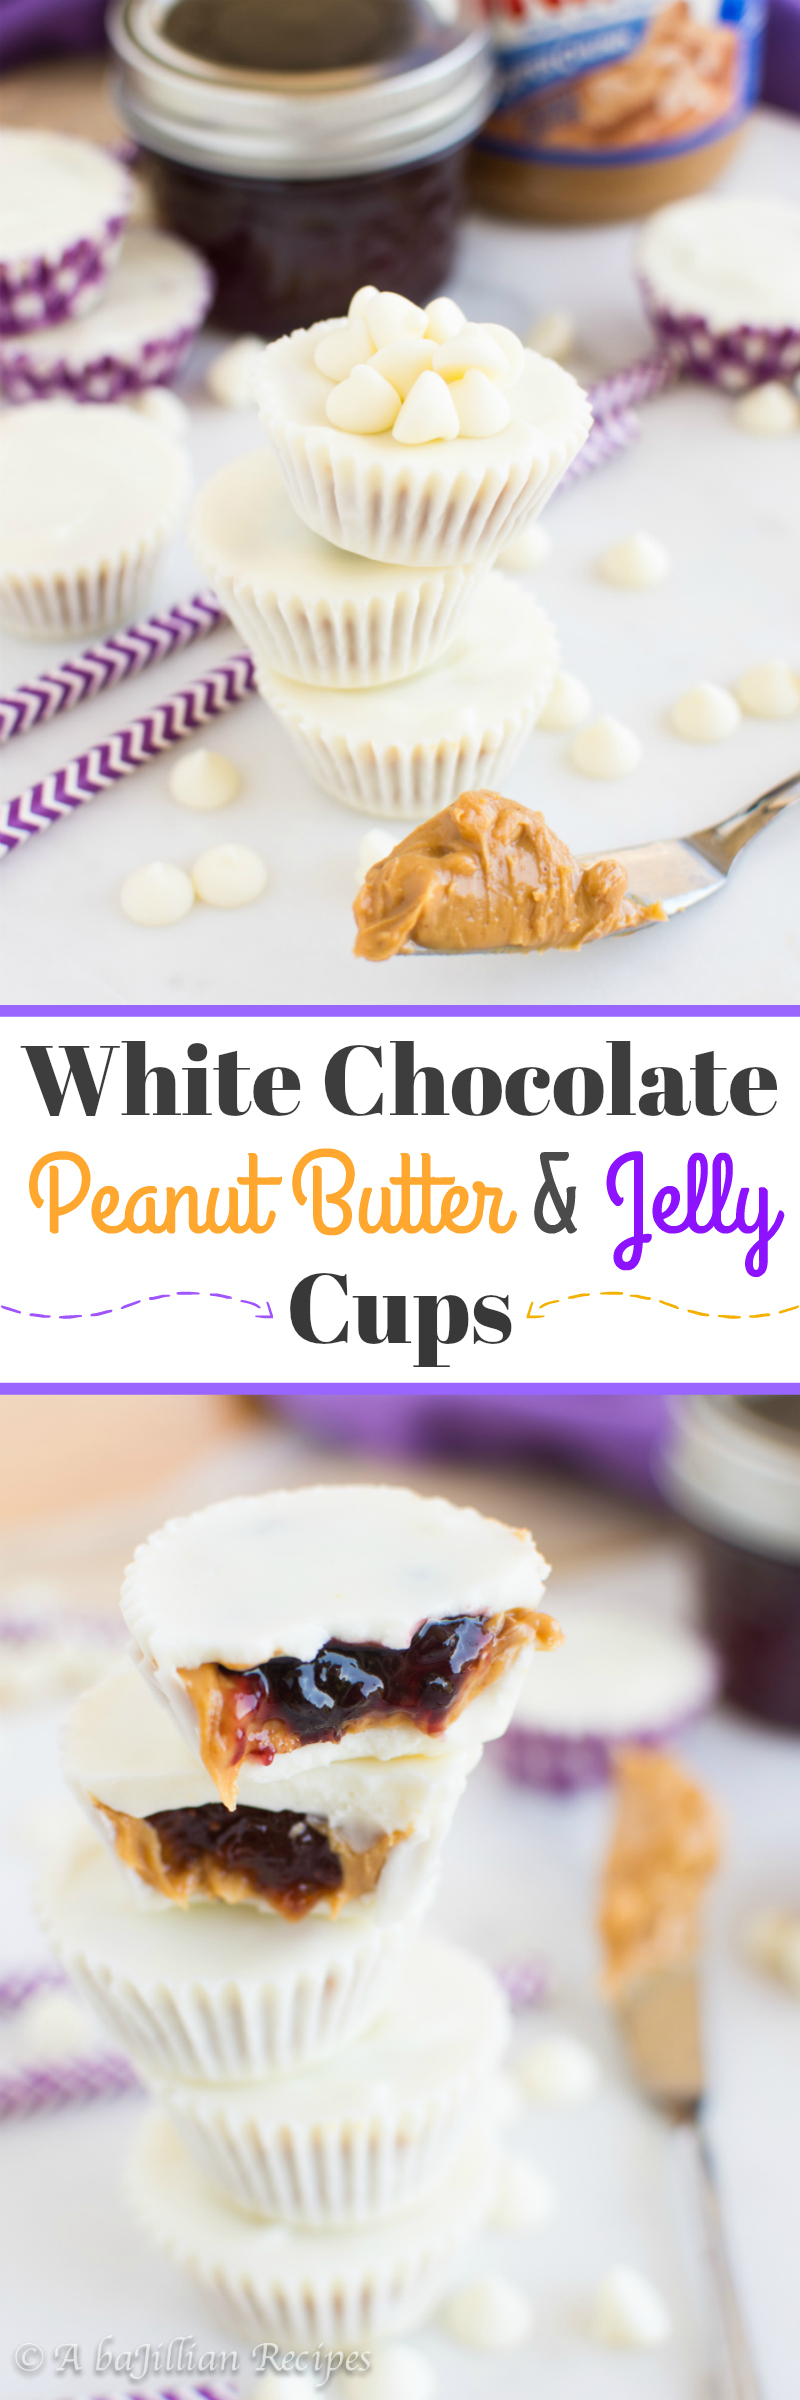 White Chocolate PB&J Cups (collage)